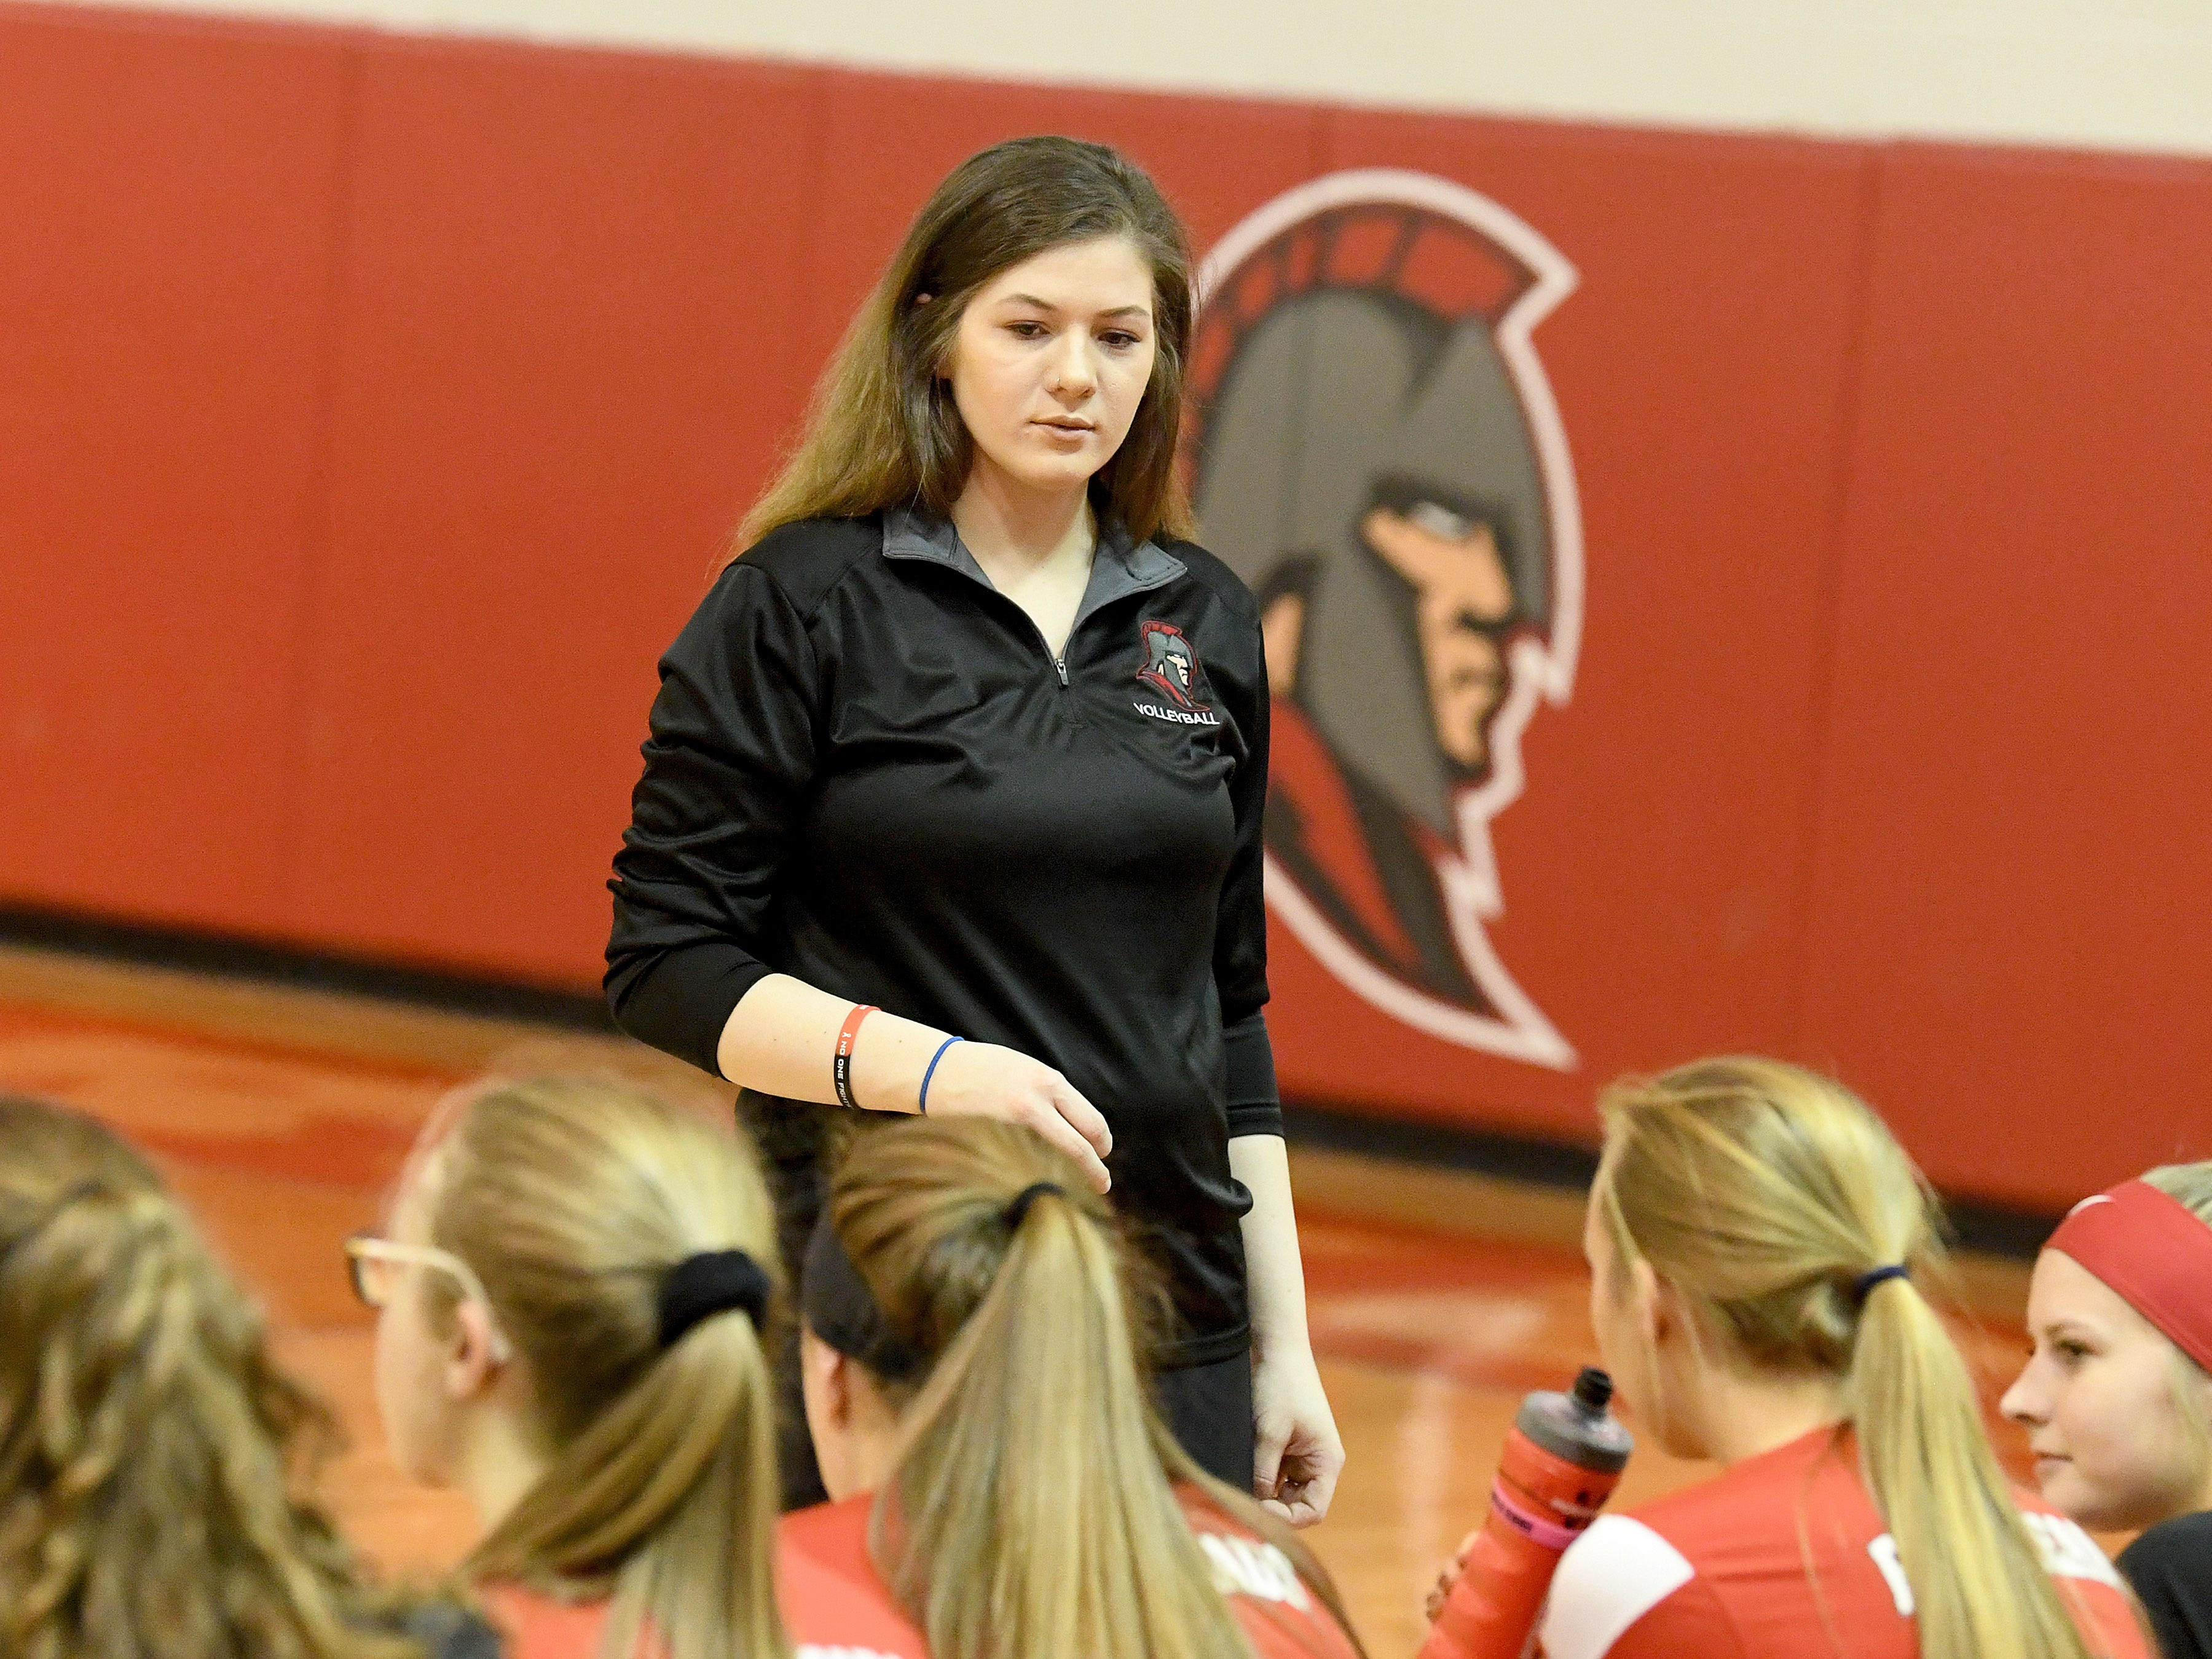 Riverheads' head coach Nyssa Stapleton looks to her team on the sidelines of the Region 1B volleyball championship played in Greenville on Wednesday, Nov. 7, 2018.